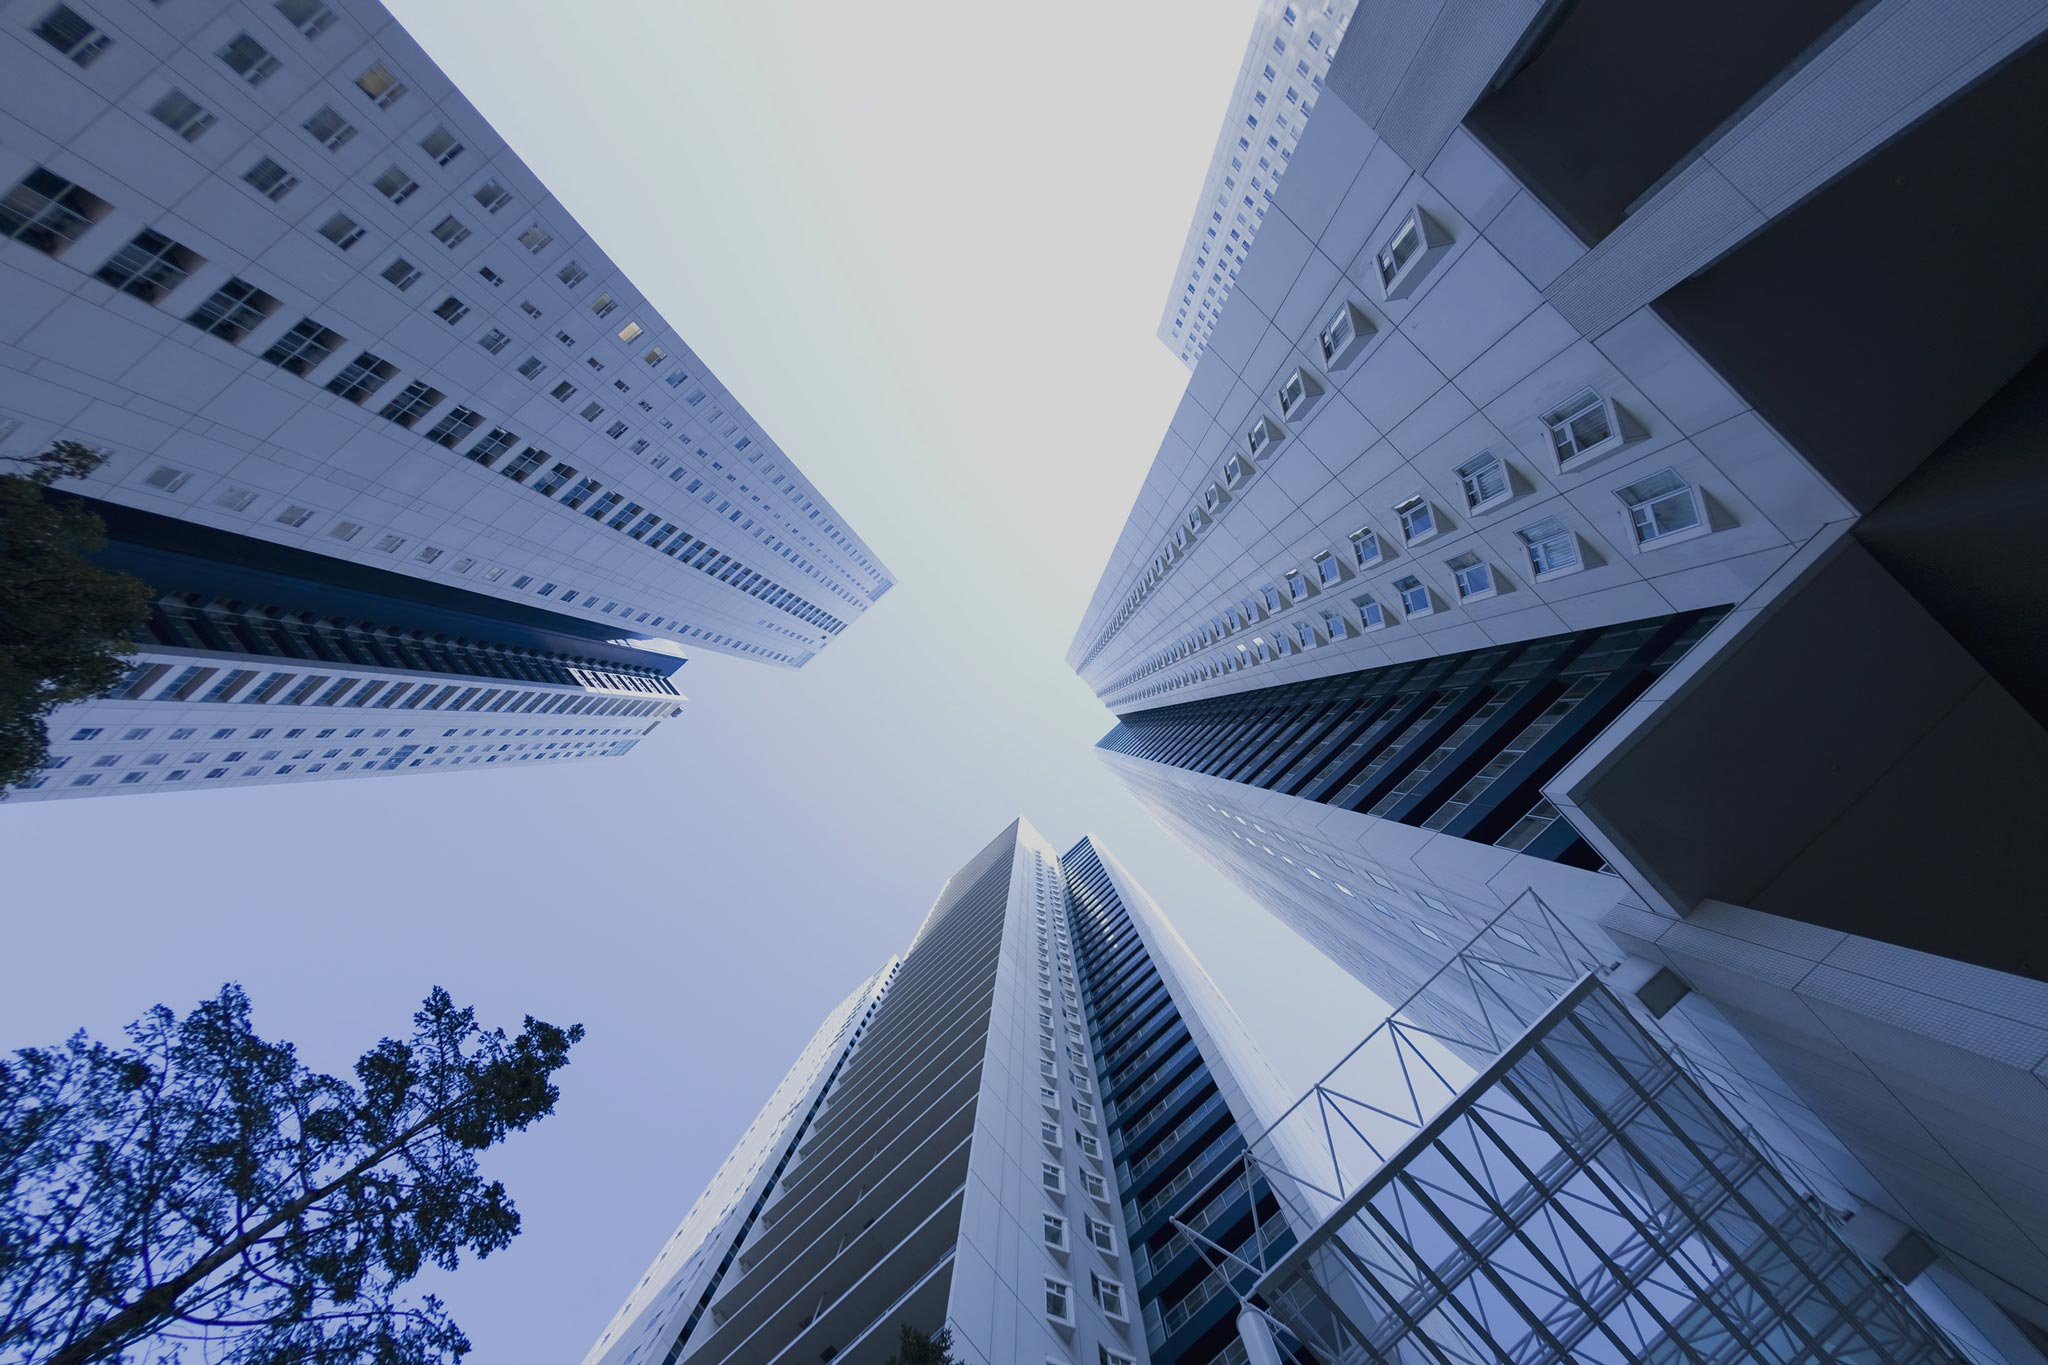 Looking up at high rise buildings